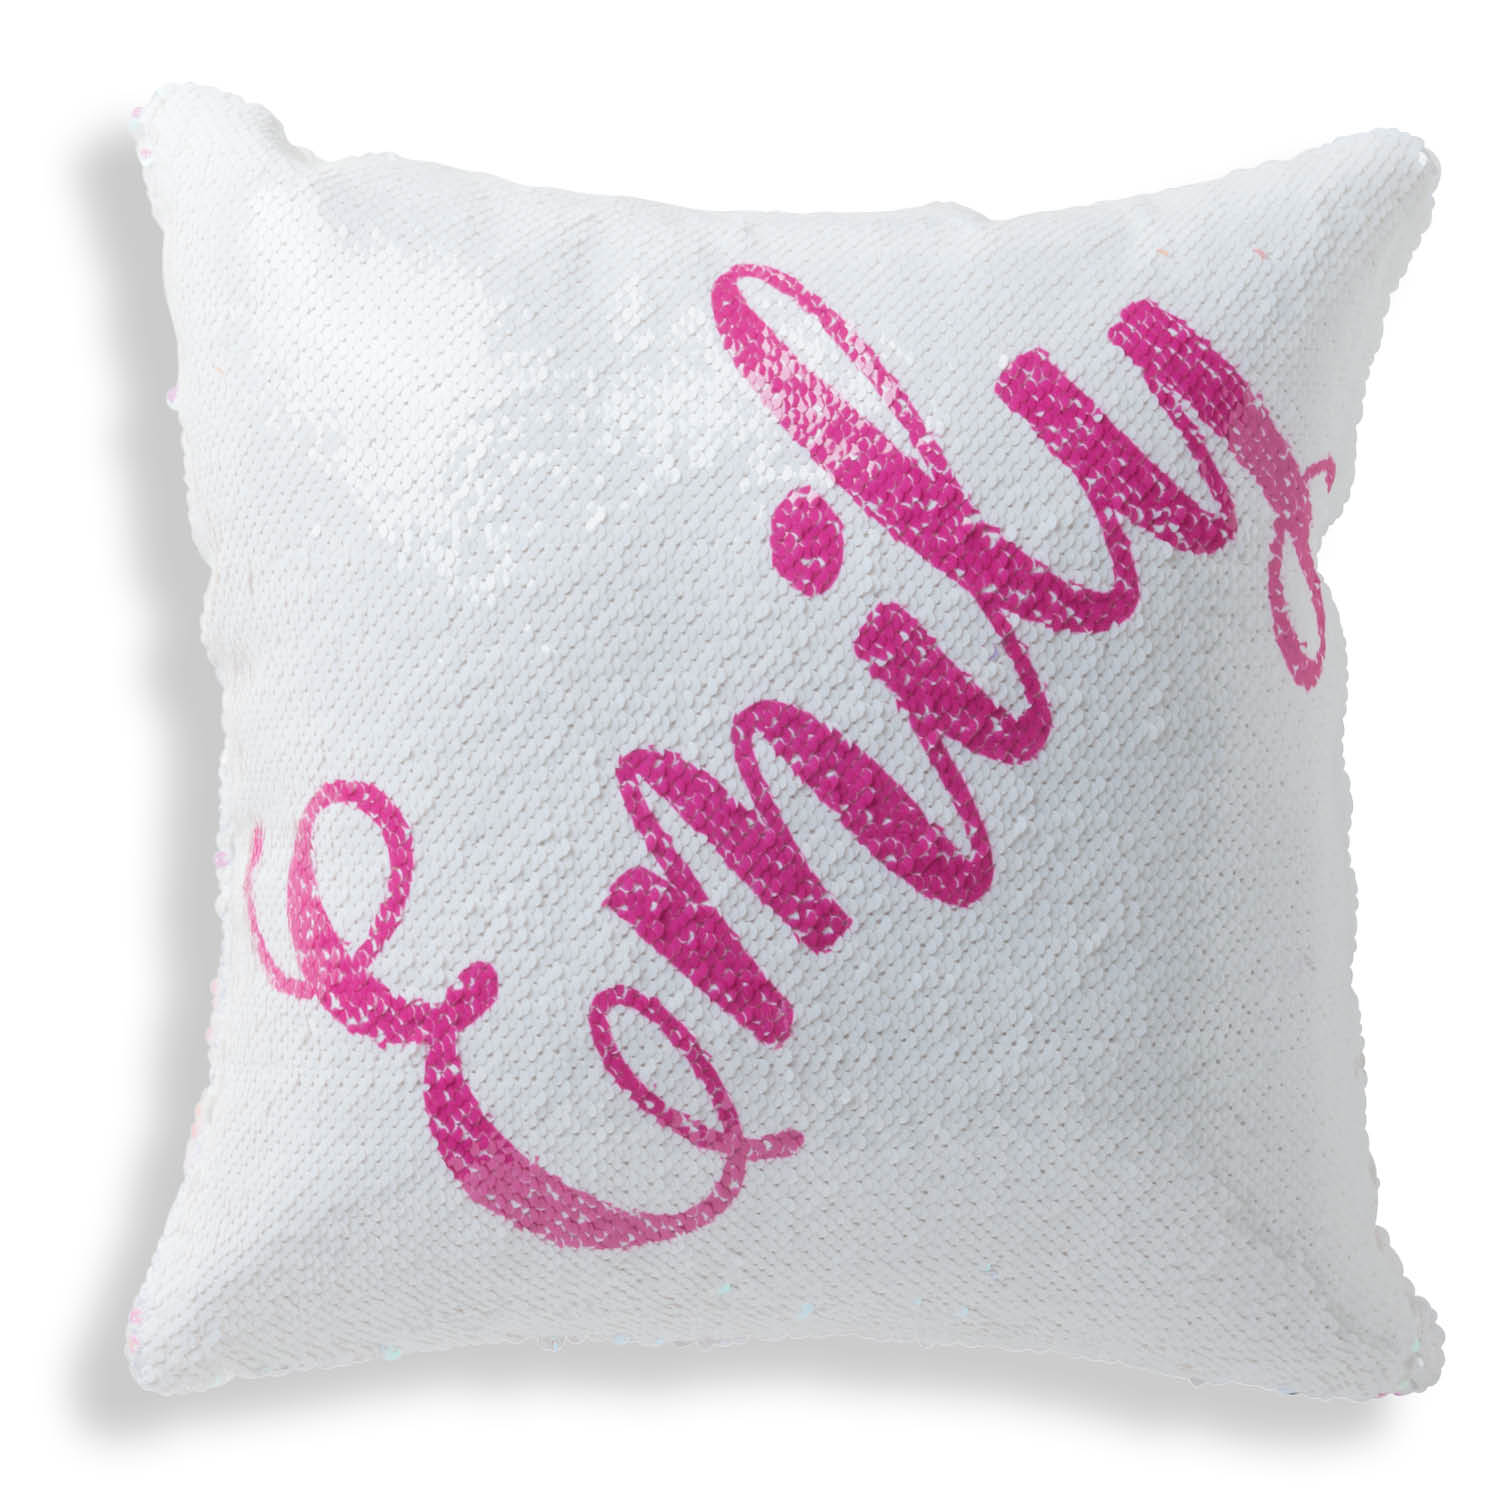 Personalized Reversible Pink Sequin Pillow - My Name